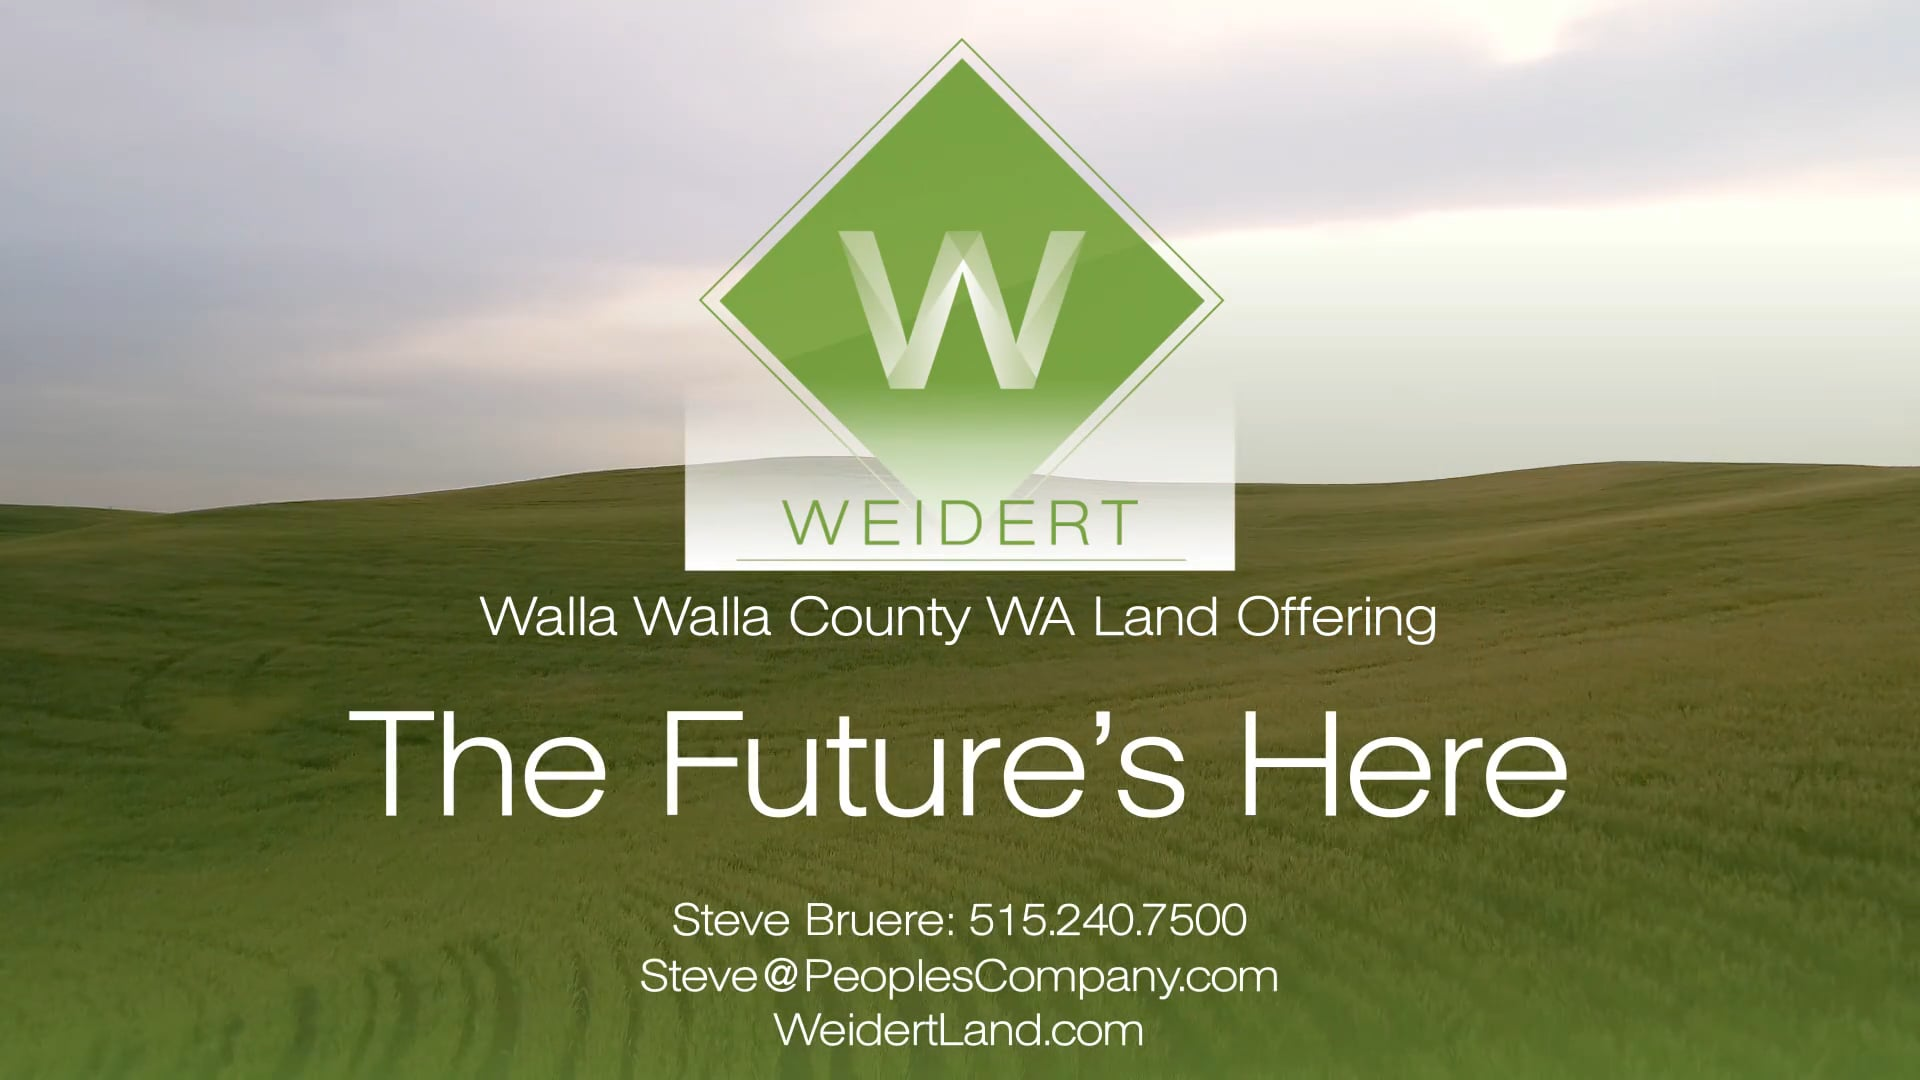 Weidert Future